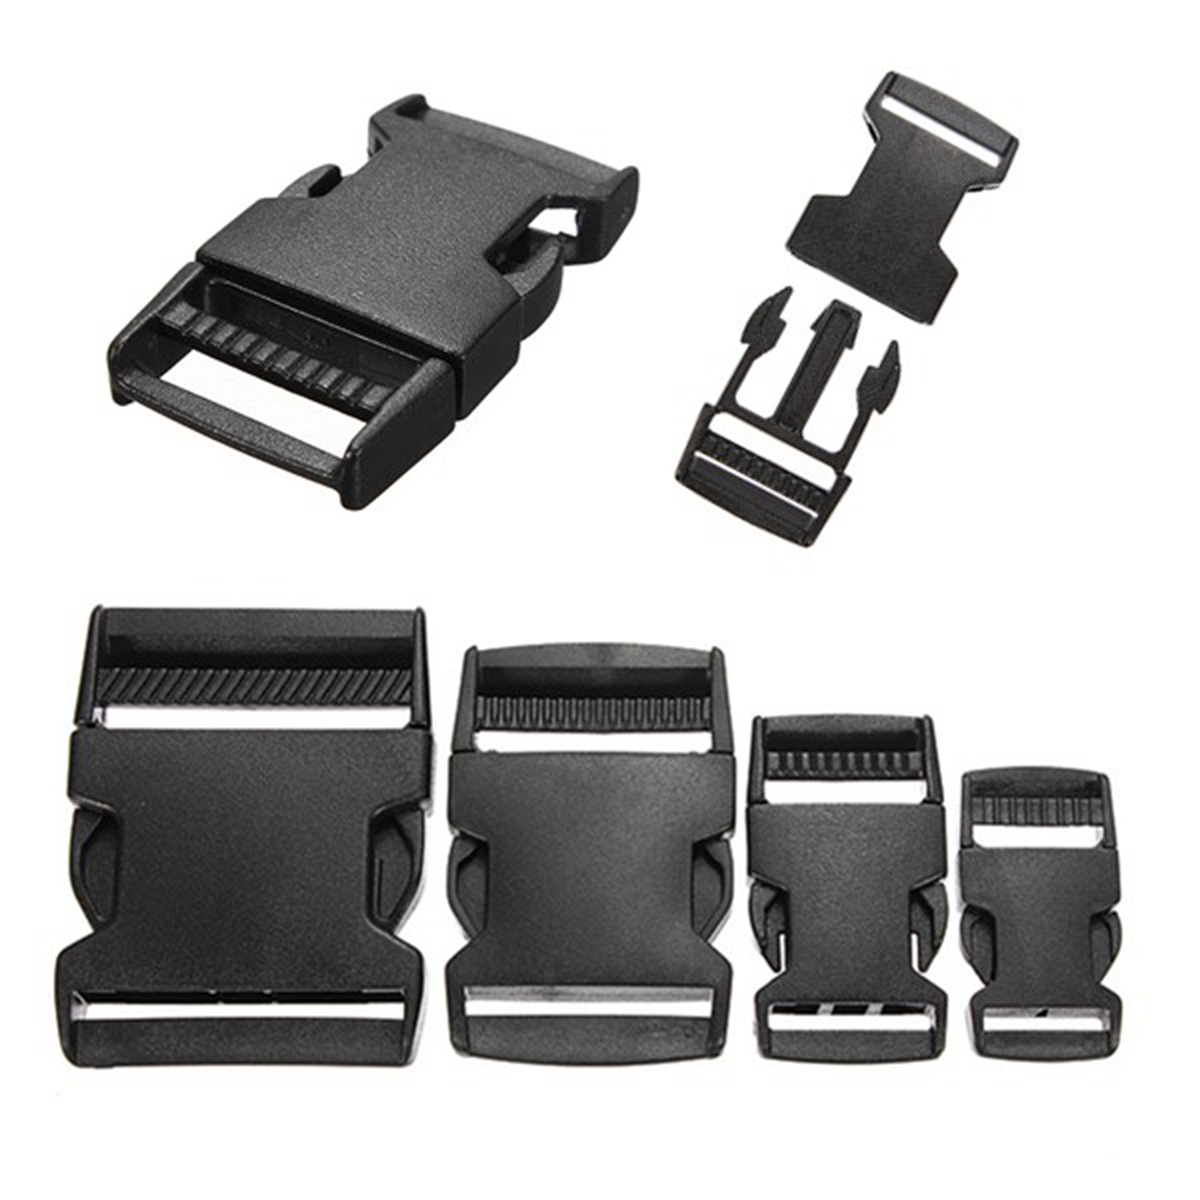 5PCS 20/25/40/50mm Plastic Hardware Dual Side Release Buckles Molle Tatical Backpack Belt Bag Parts Strap Webbing Release Clasp